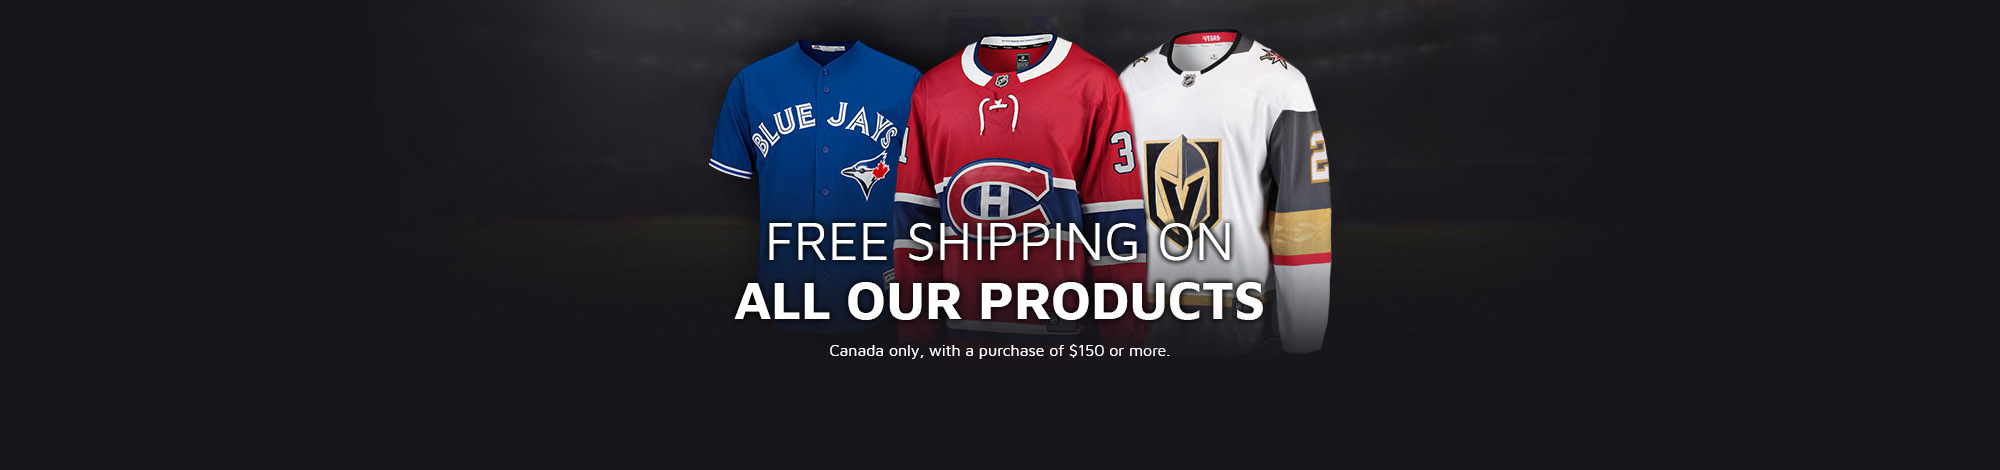 Free shipping in Canada with an order of 150 $ or more